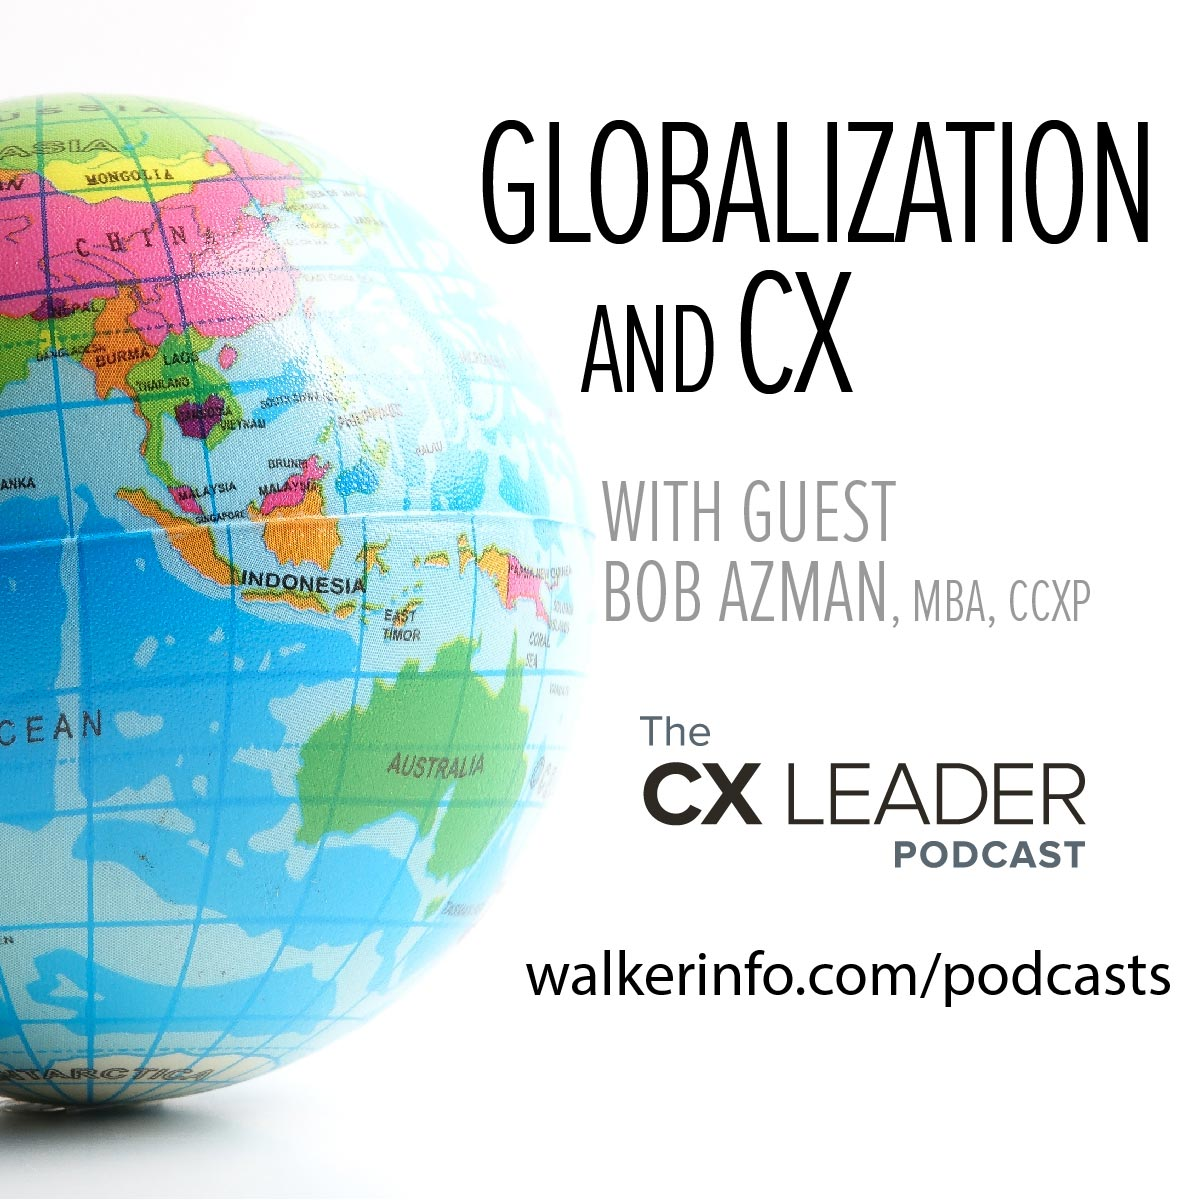 Globalization and CX